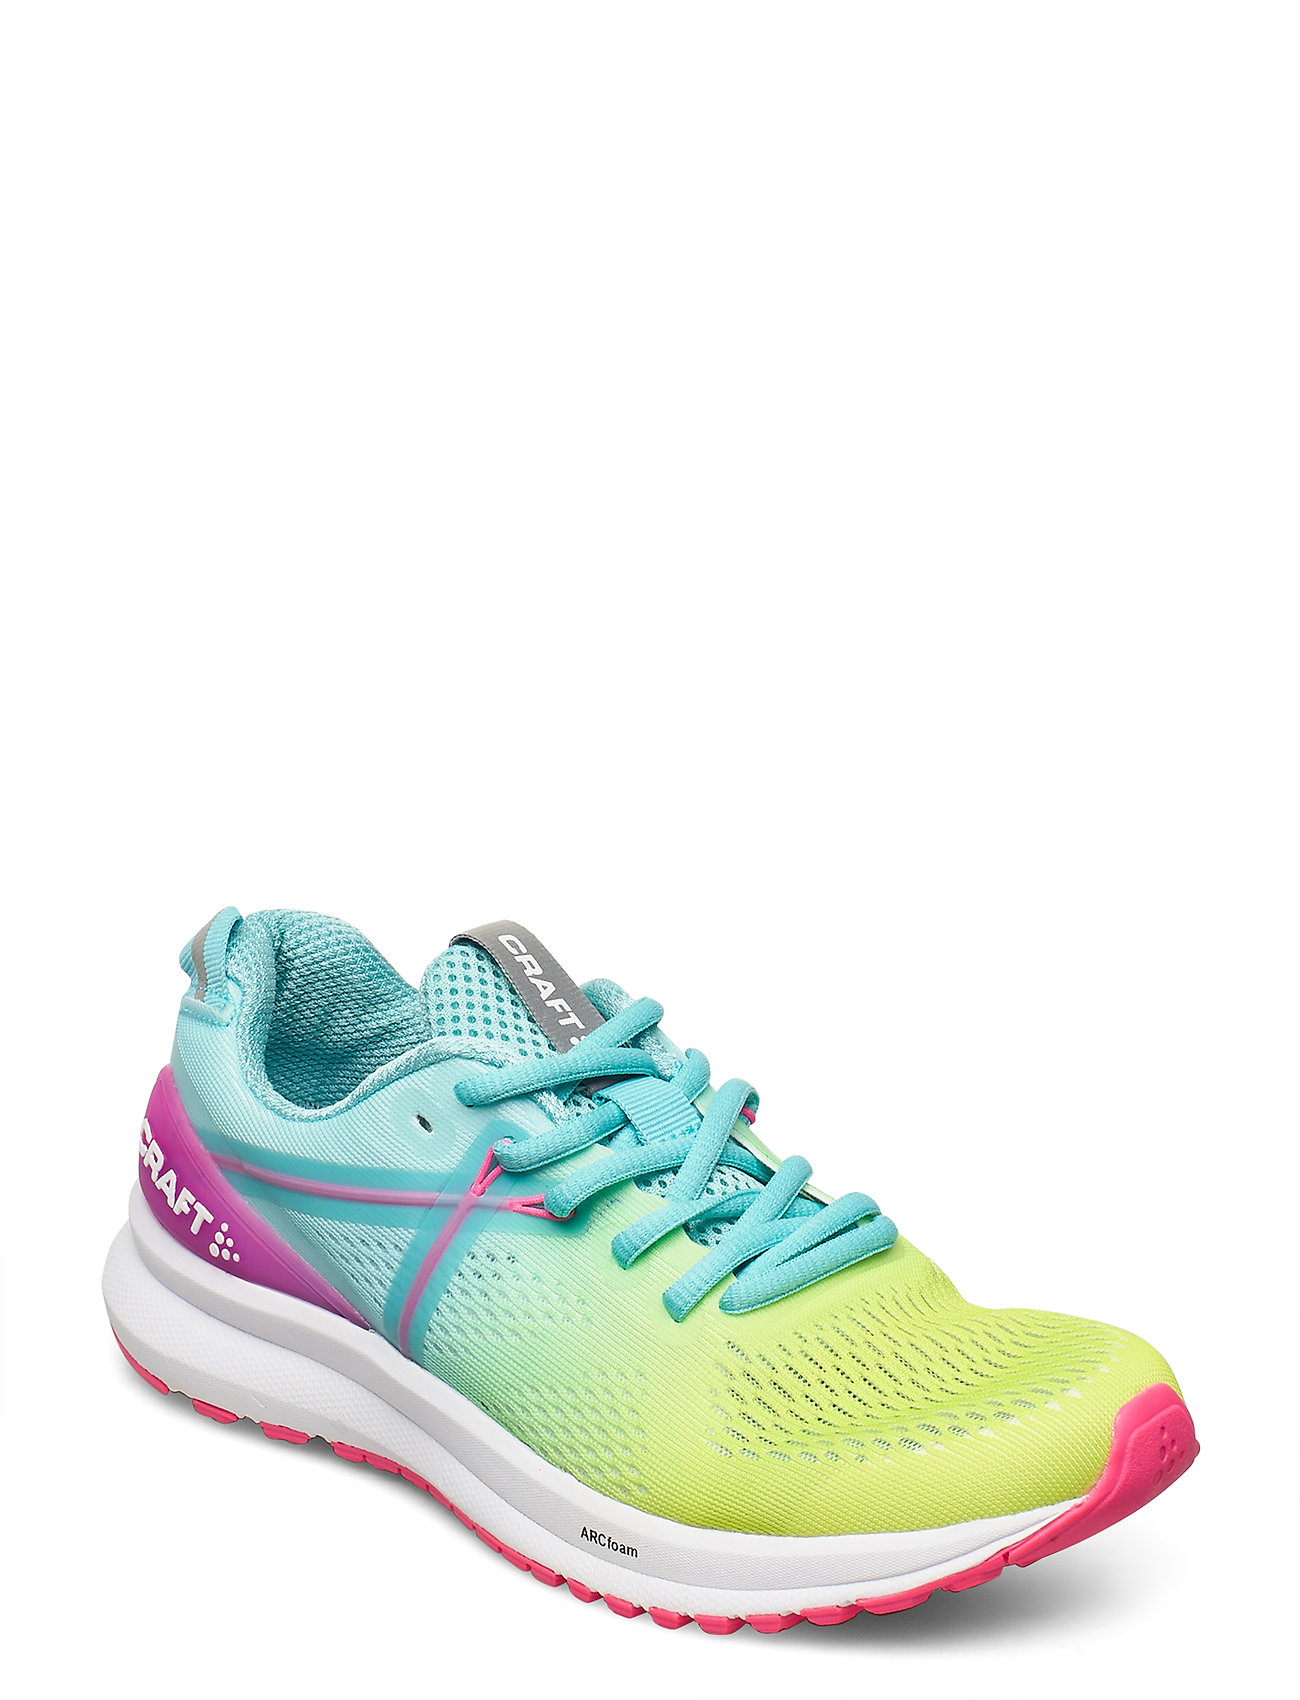 Image of Shoe X165 Engineered W Shoes Sport Shoes Running Shoes Multi/mønstret Craft (3452760041)